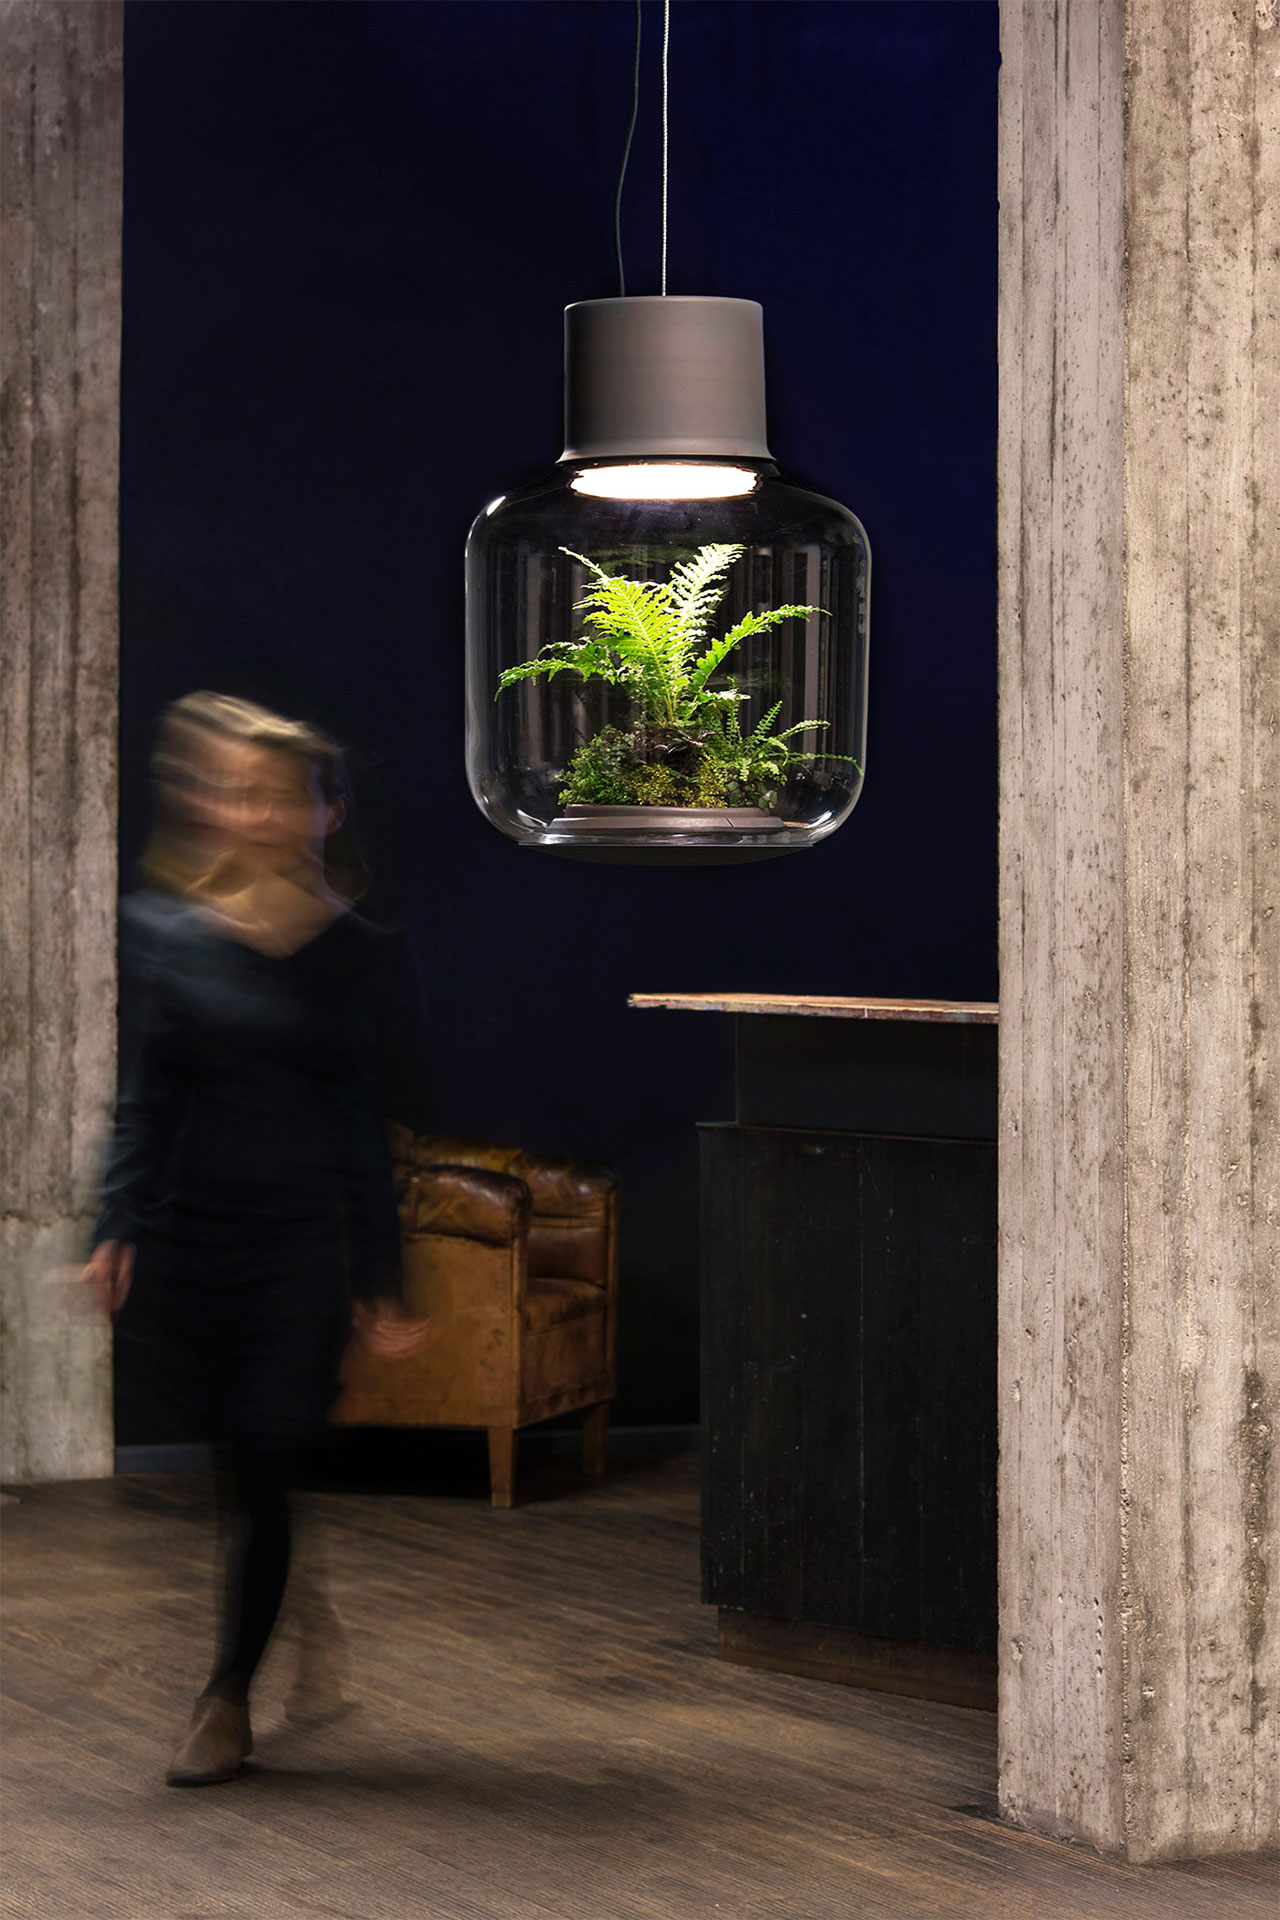 Lamp Mygdal, by Studio Nui. Photo © ErwinBlock Photography.